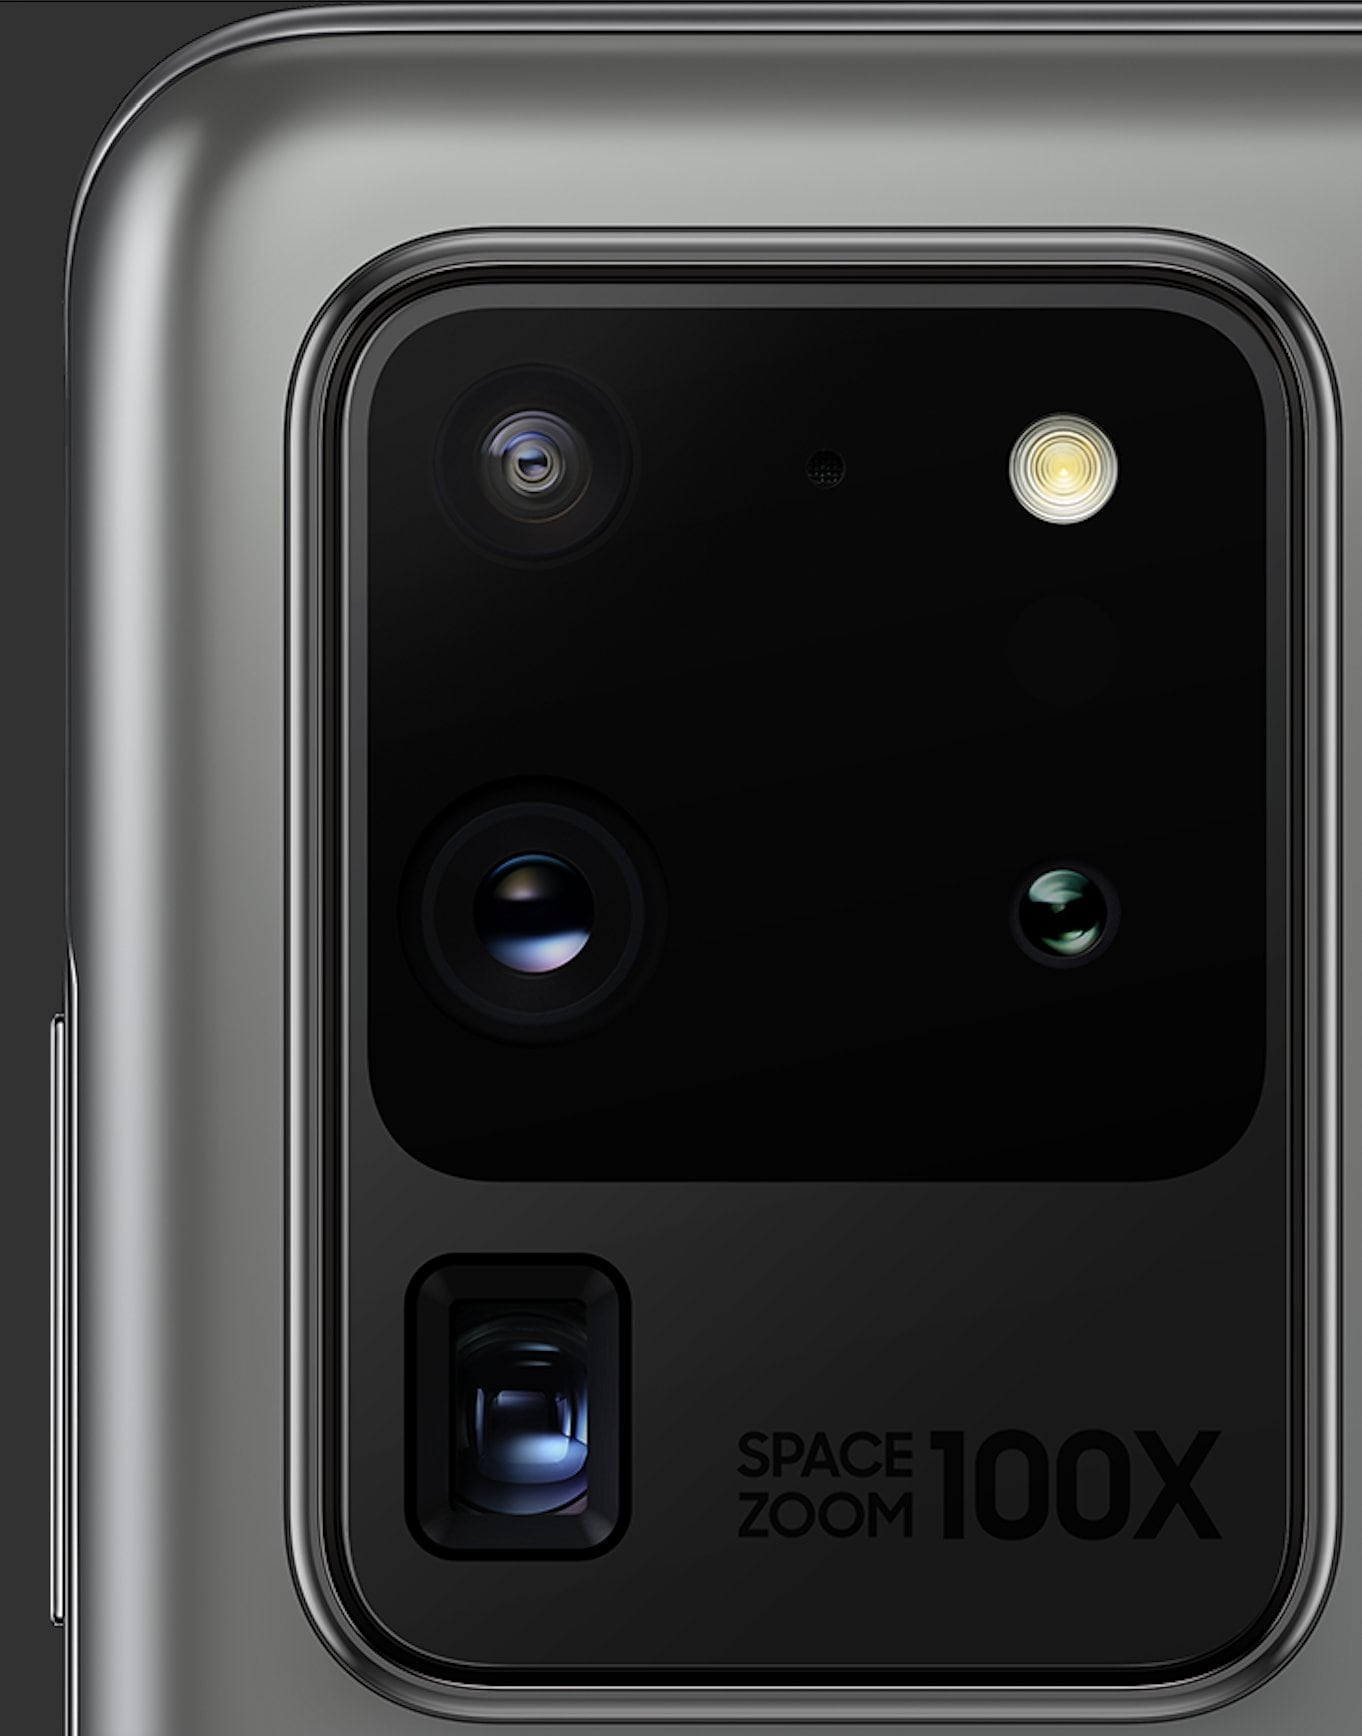 South Korea reveals the latest details on the pre-orders of the S20 range, as well as a live photo of the S20 Ultra 5G